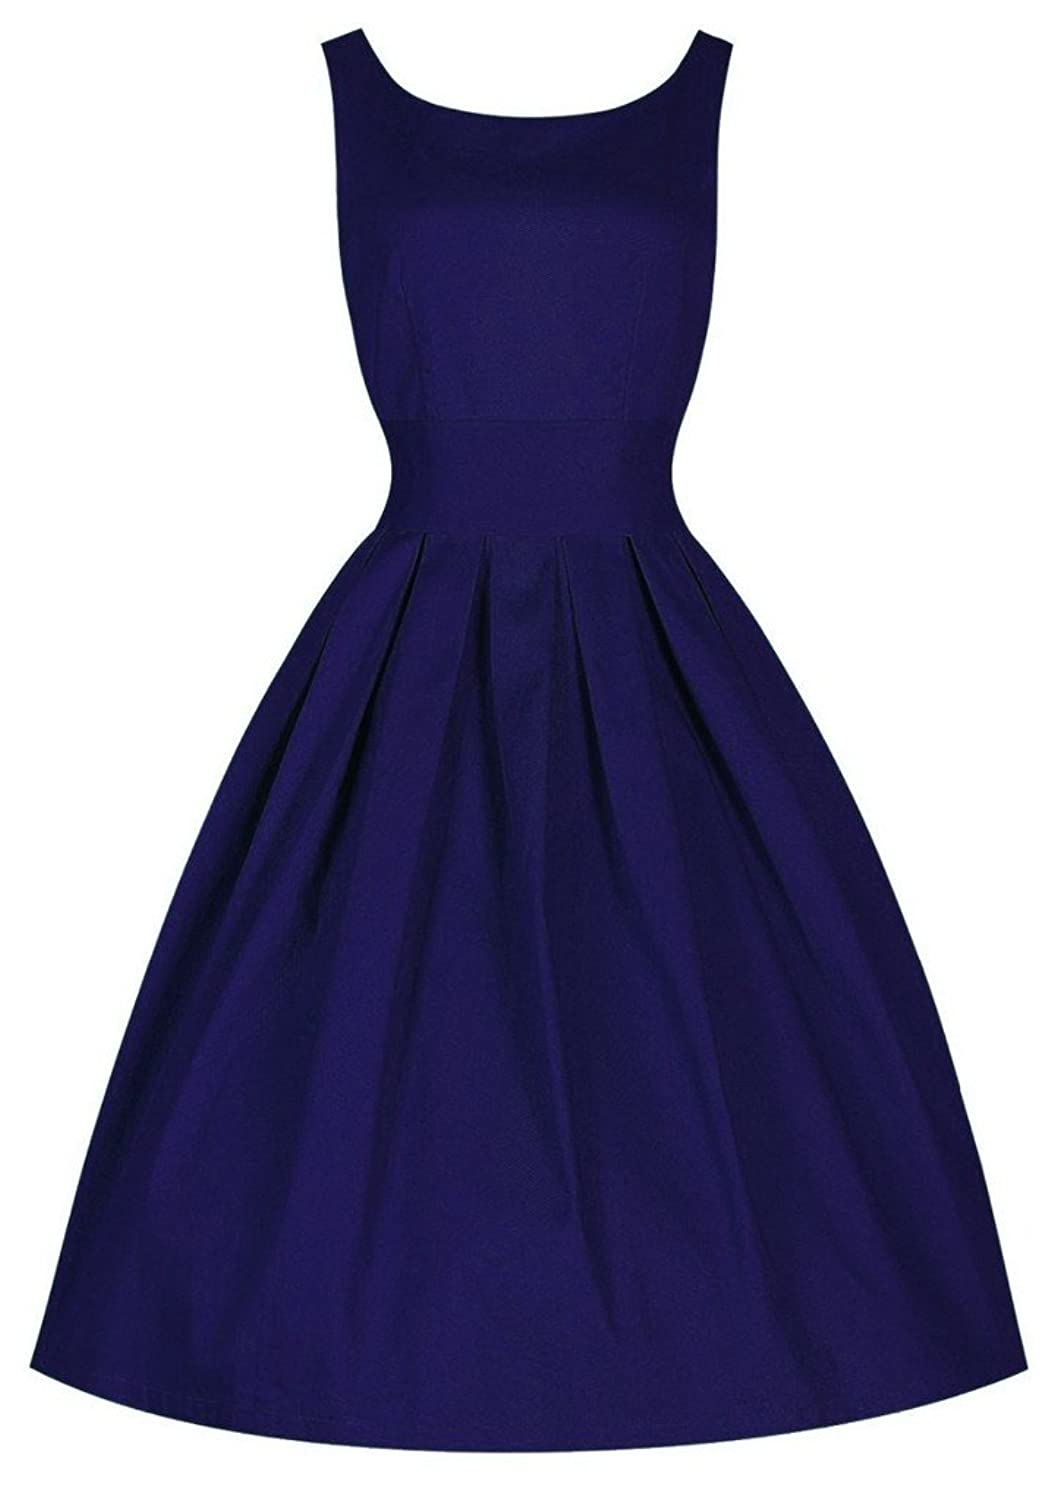 1950s Evening Dresses for Sale